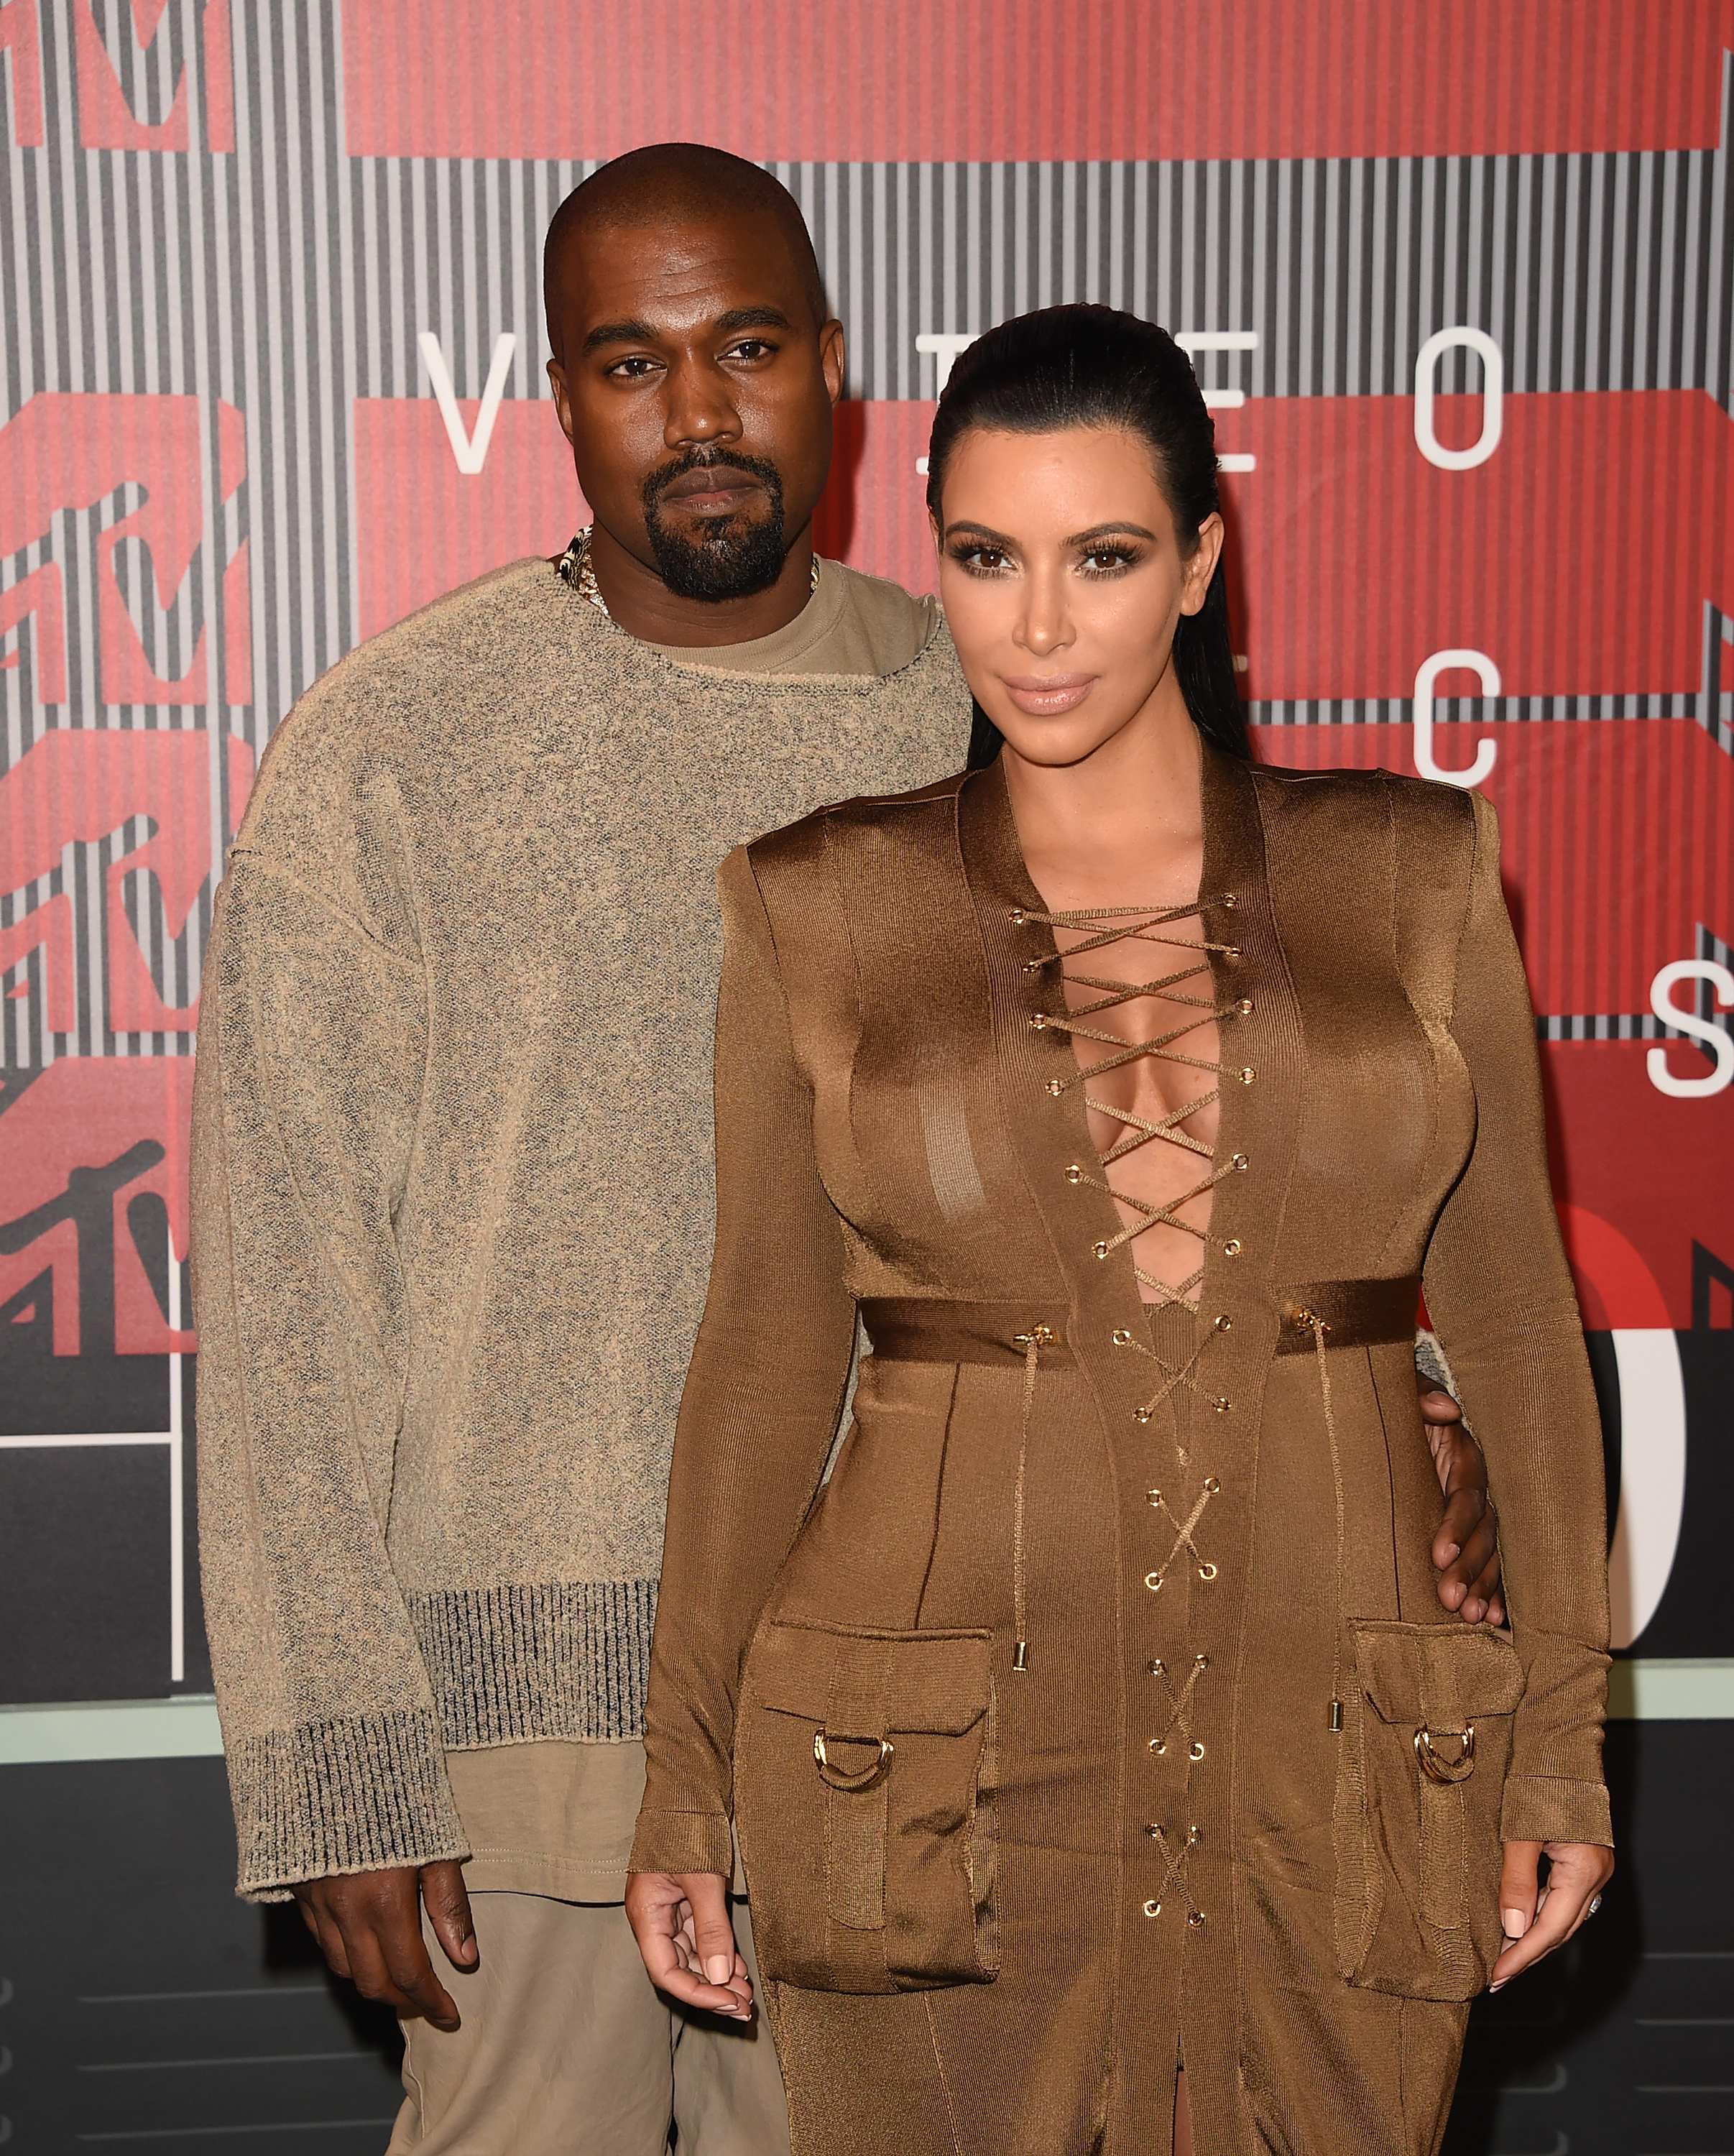 Kanye West Gives Kim Kardashian 150 Christmas Gifts & Tops All His ...